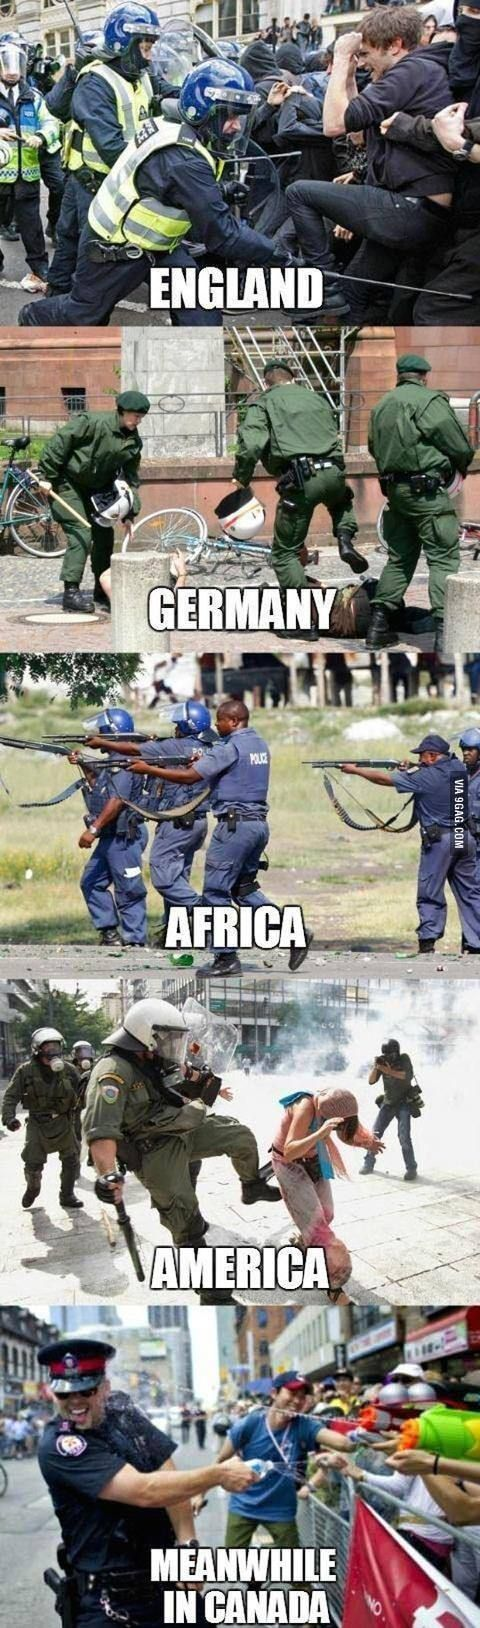 Police brutality is happening across the world people are being beaten and harassed freedom vs.order is in effect